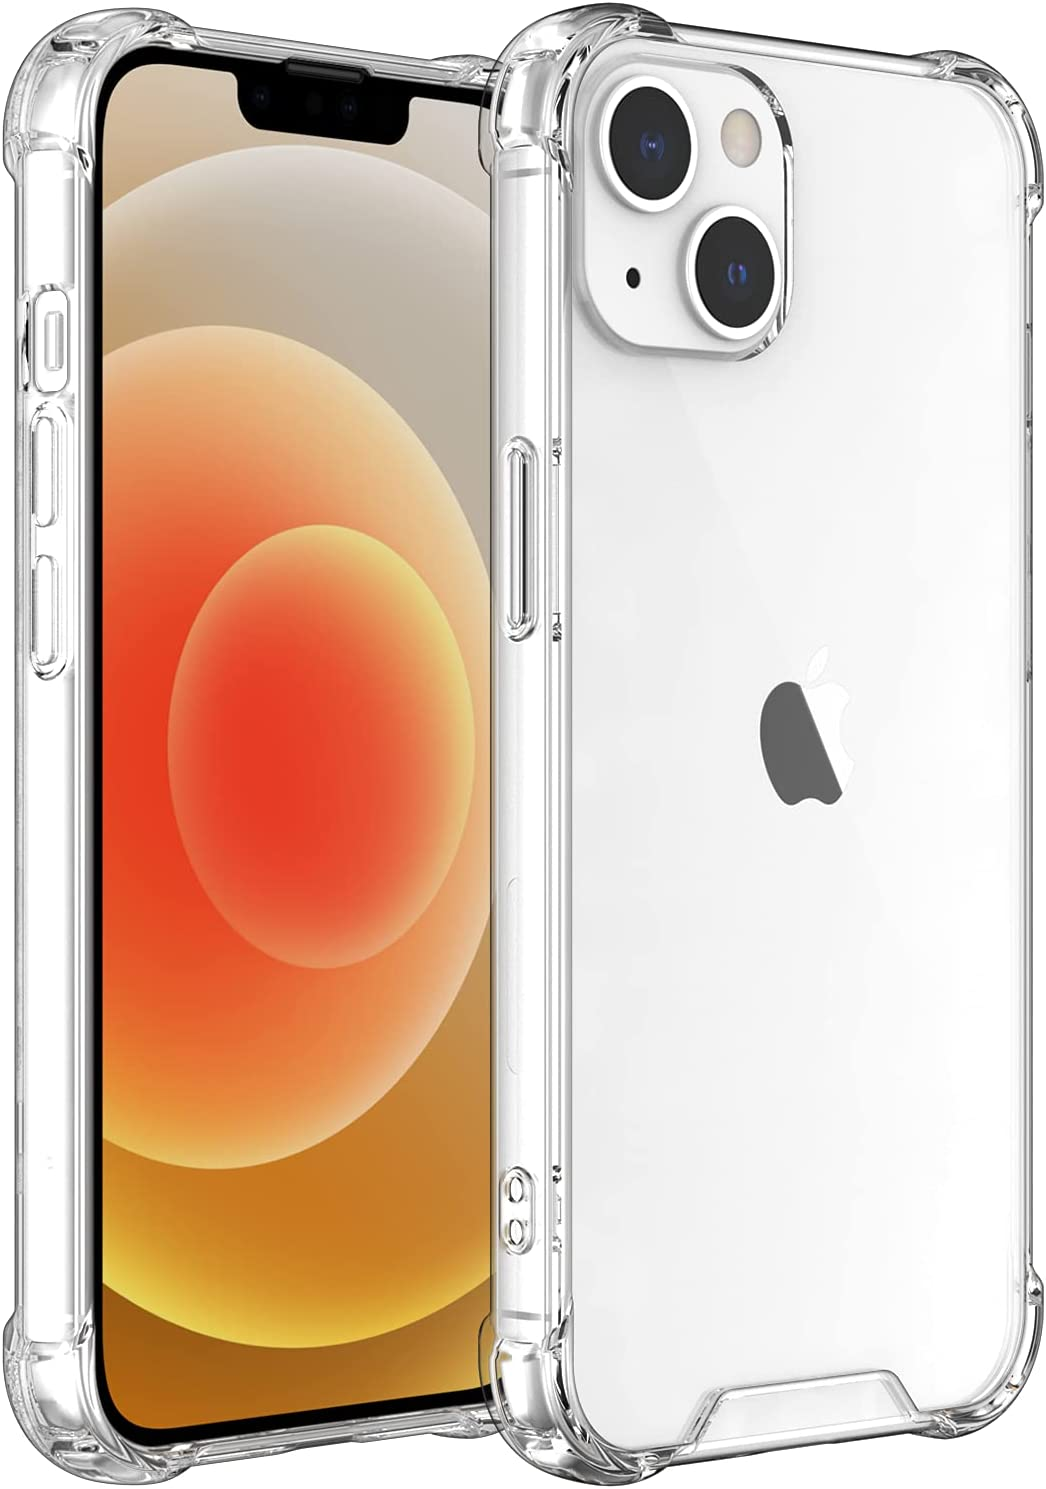 Shamo's for iPhone 13 Case, Crystal Clear Anti-Scratch Shock Absorption Cover, TPU Bumper with Reinforced Corners [ Anti Yellowing ]